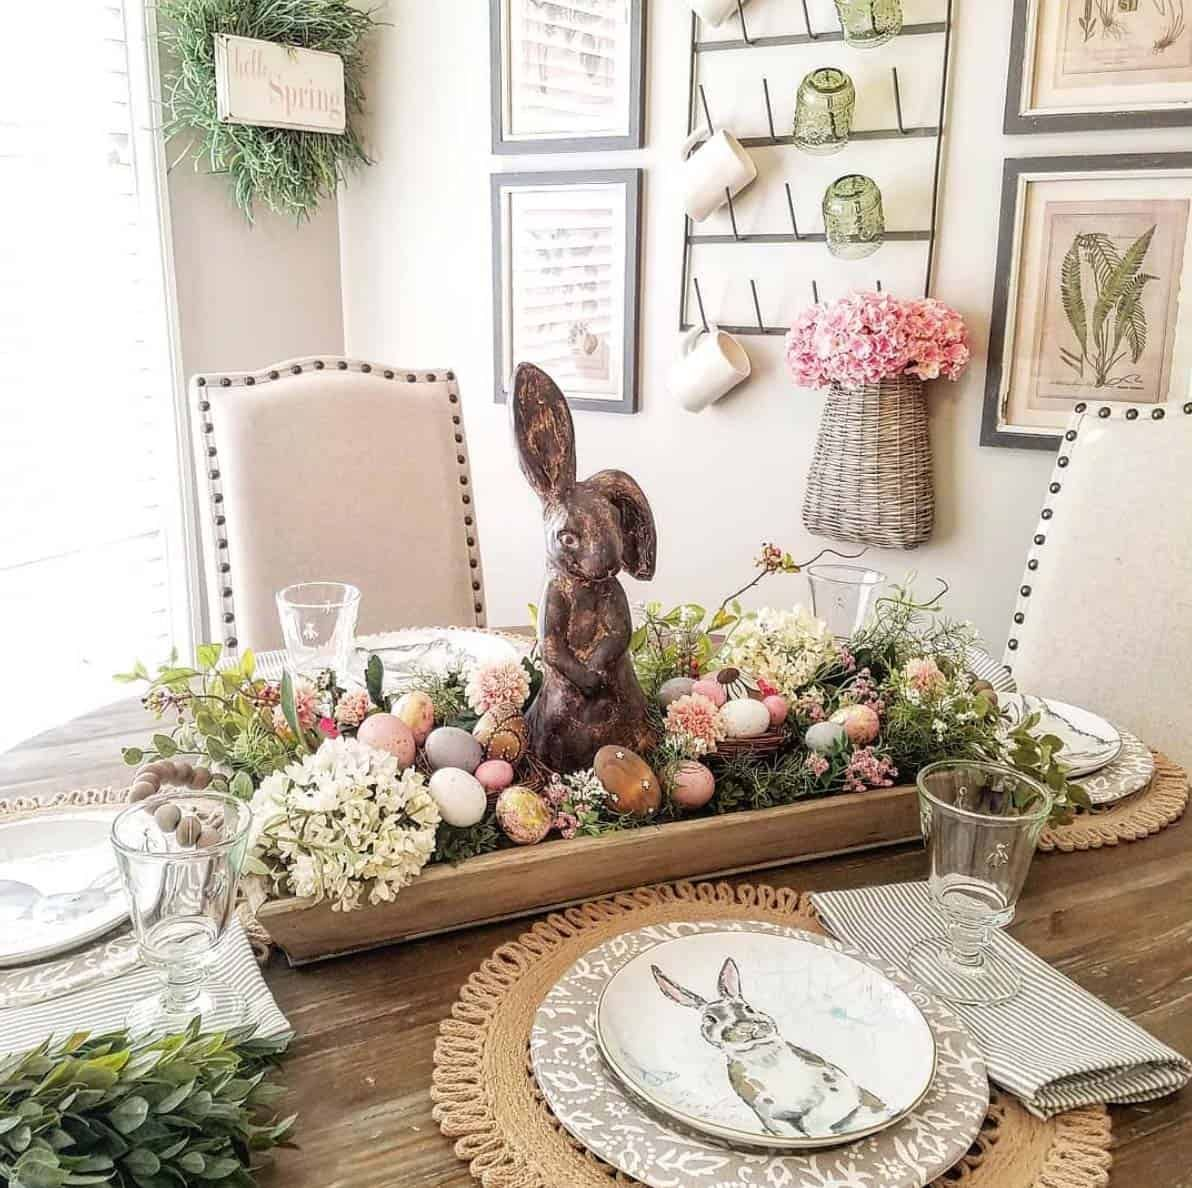 26 Beautiful Decorating Ideas To Celebrate Spring Using Dough Bowls Easter Bunny Centerpiece Easter Table Decorations Spring Easter Decor